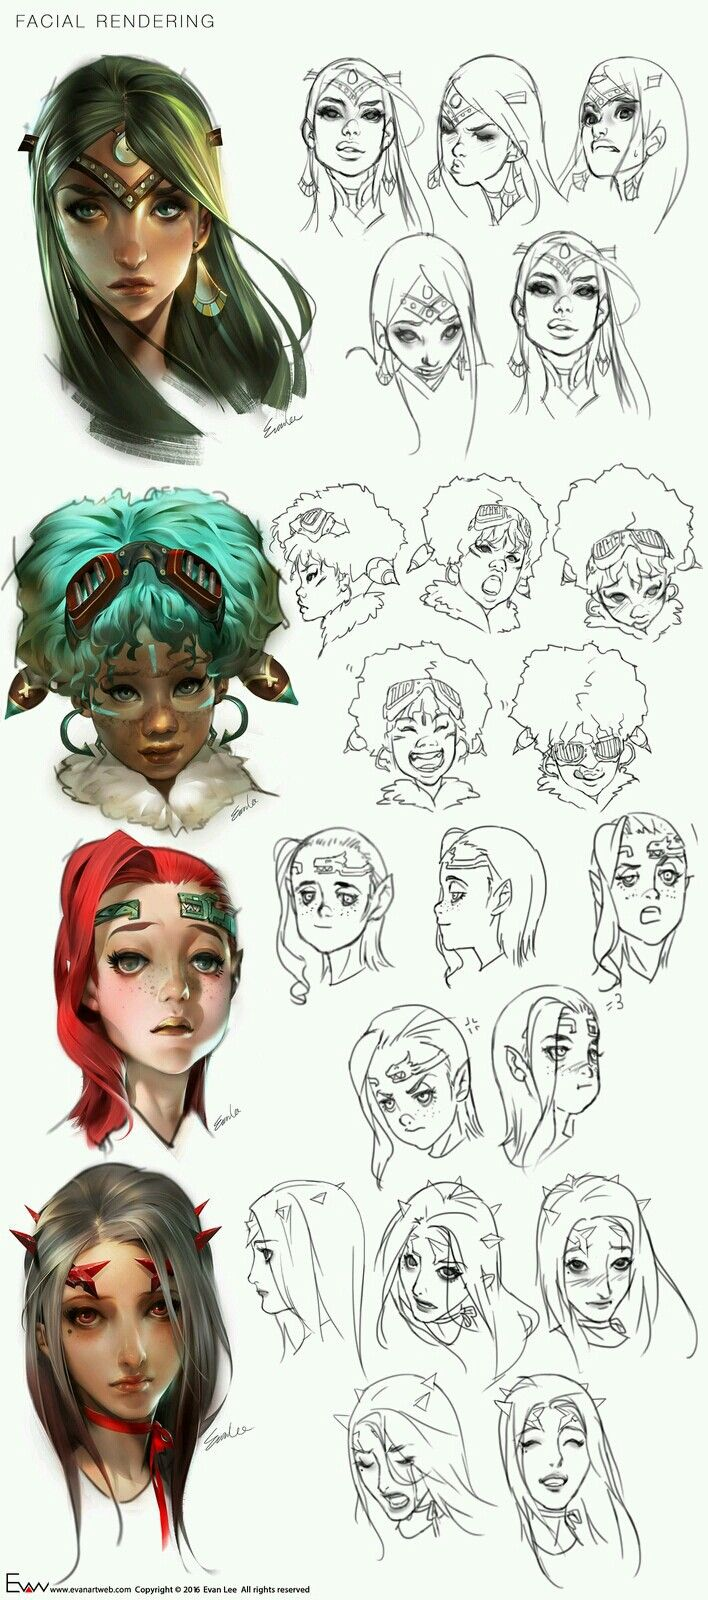 Pin by Normal Anomaly on -_Art Ref_- | Character design